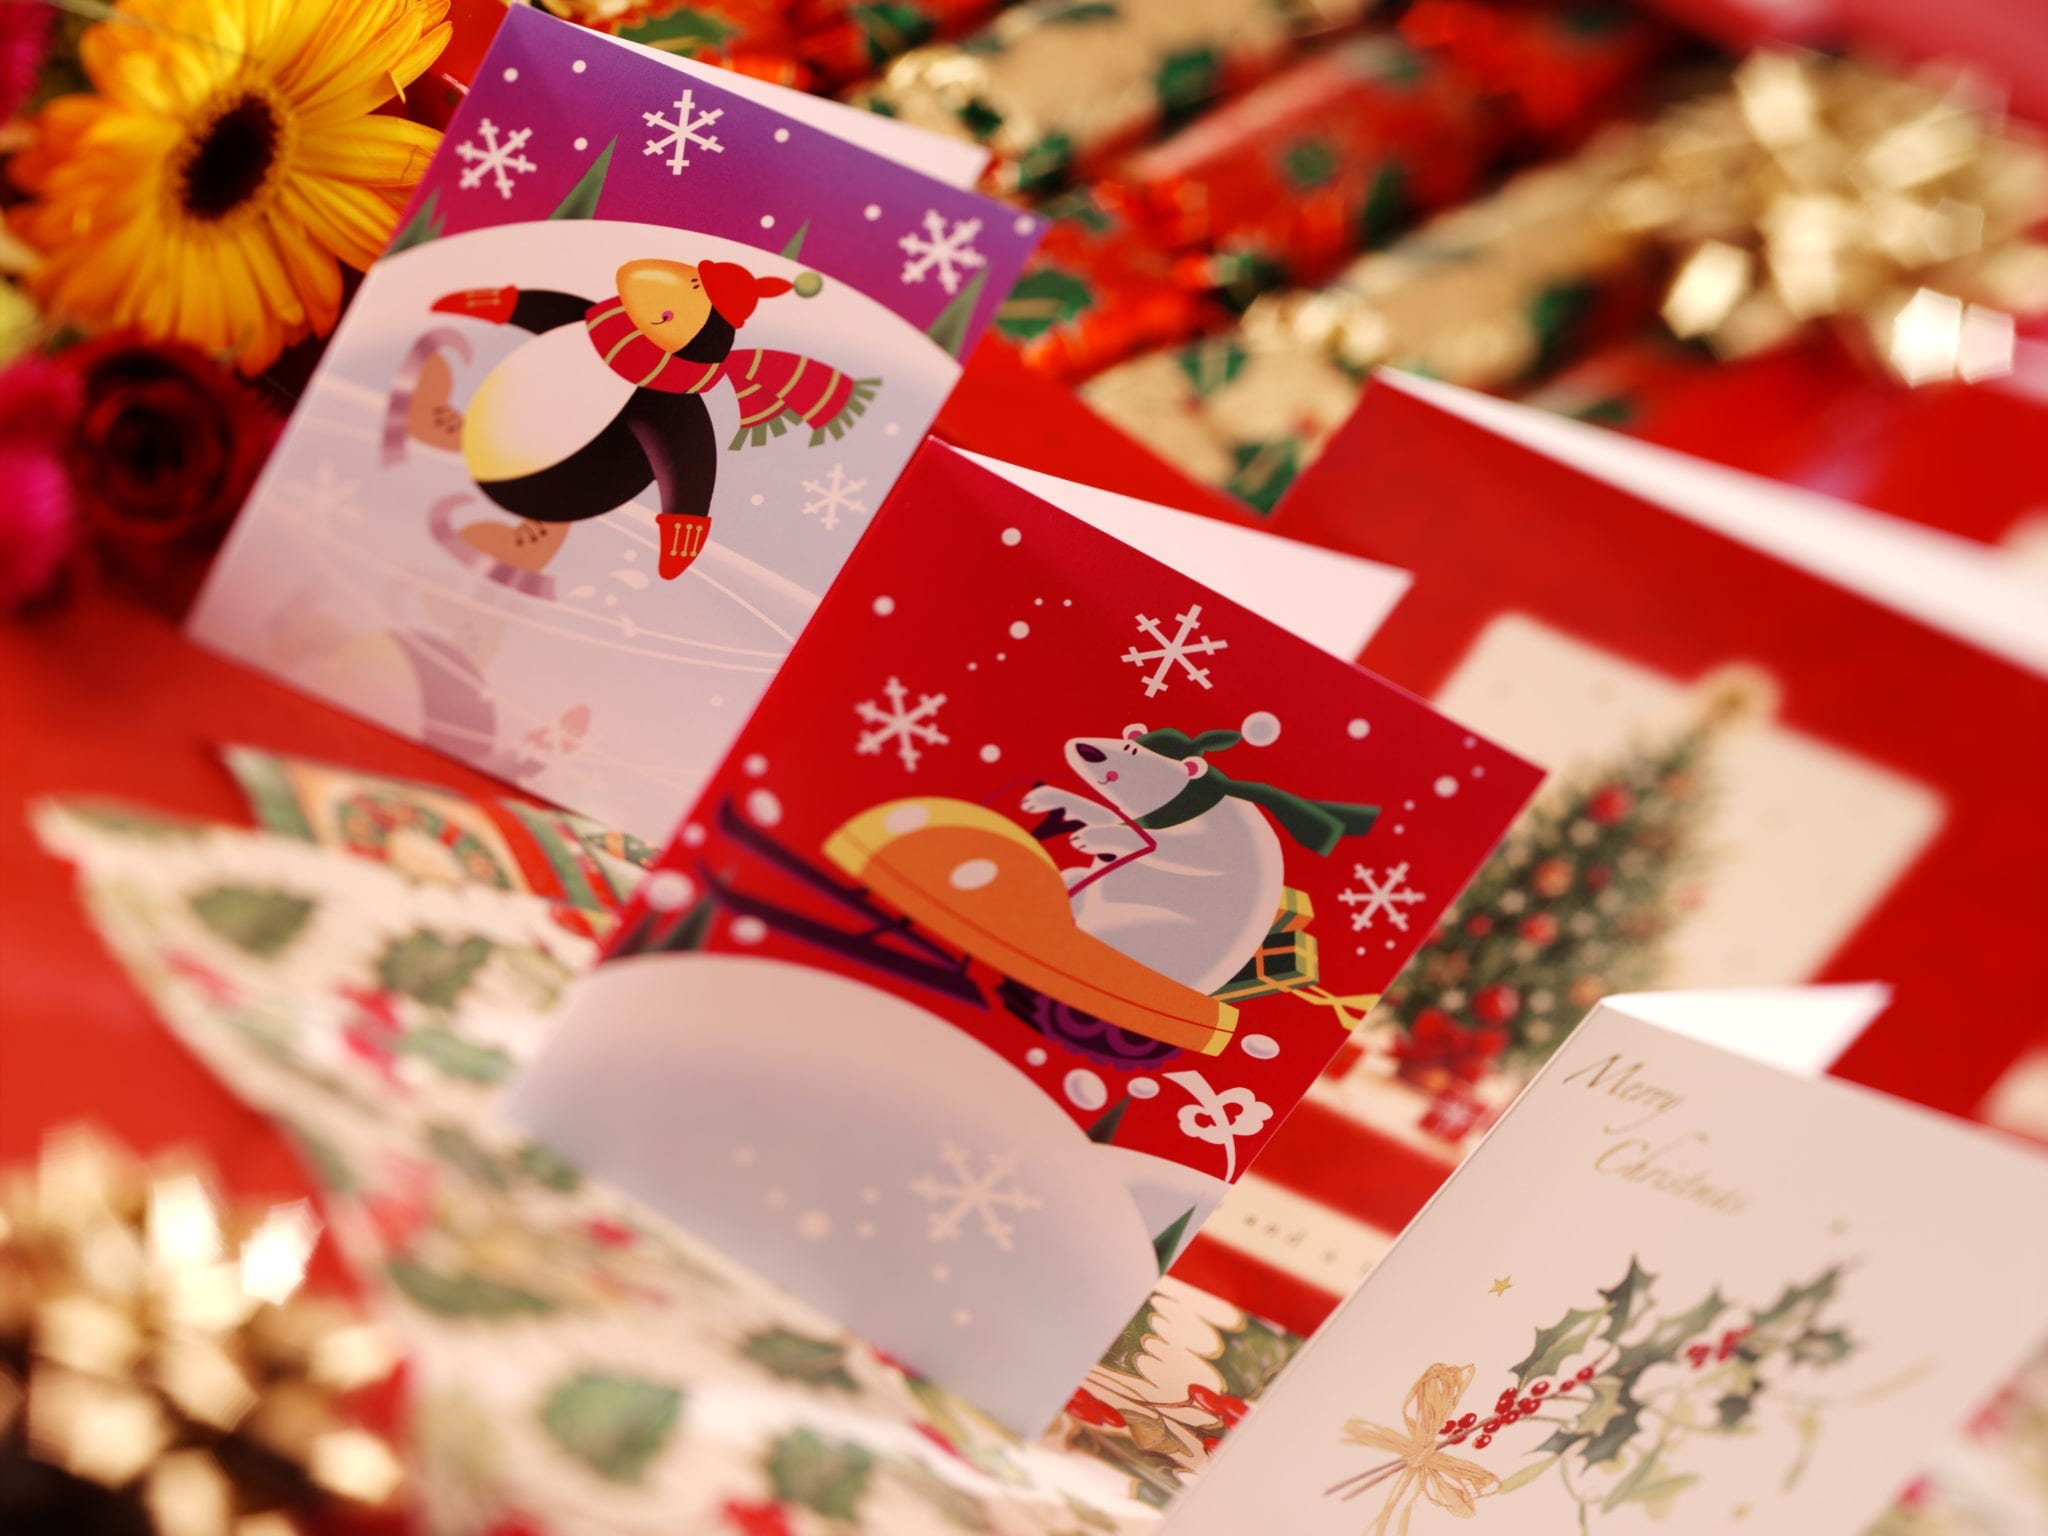 Business Christmas cards - are your competitors taking the lead?